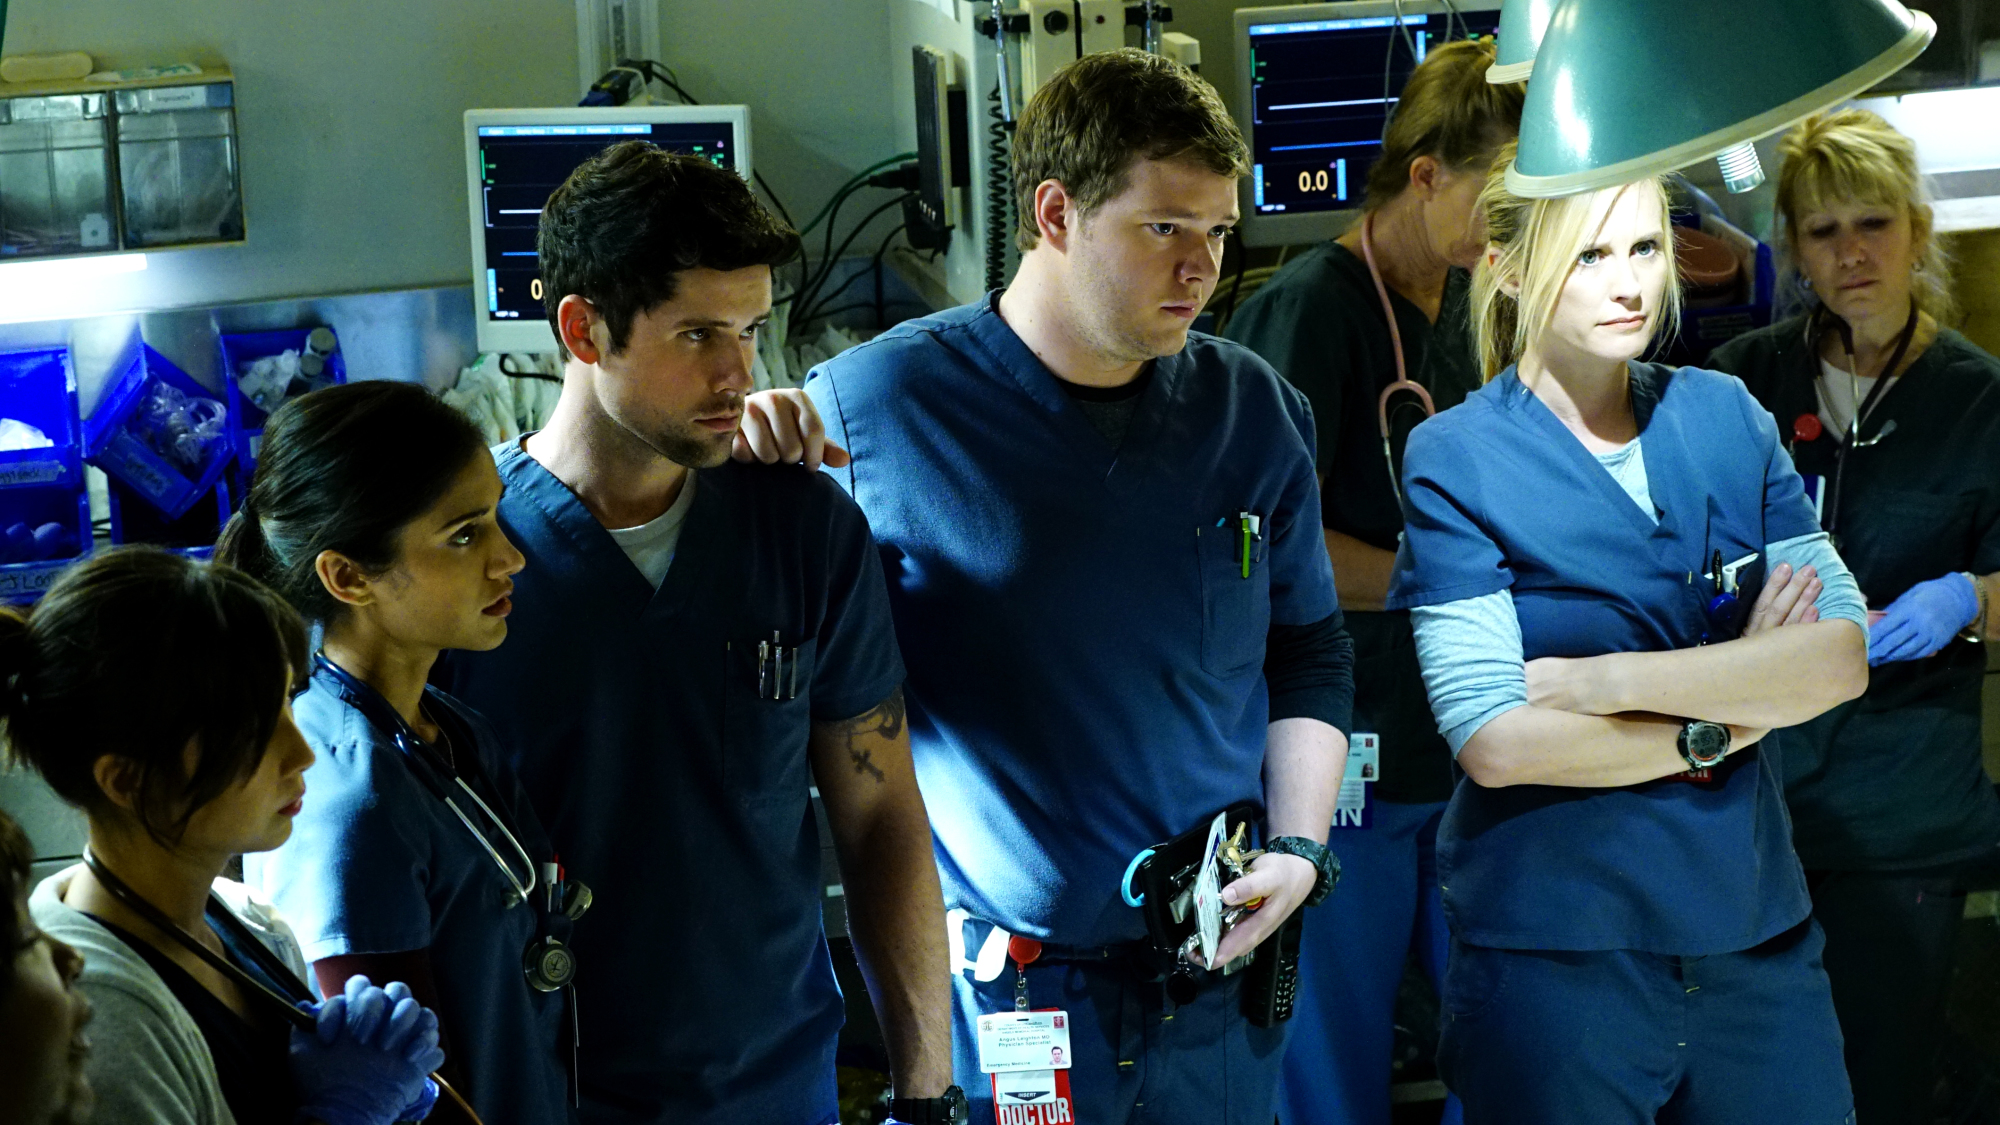 Melanie Chandra as Dr. Malaya Pineda, Benjamin Hollingsworth as Dr. Mario Savetti, Harry Ford as Dr. Angus Leighton, and Bonnie Somerville as Dr. Christa Lorenson